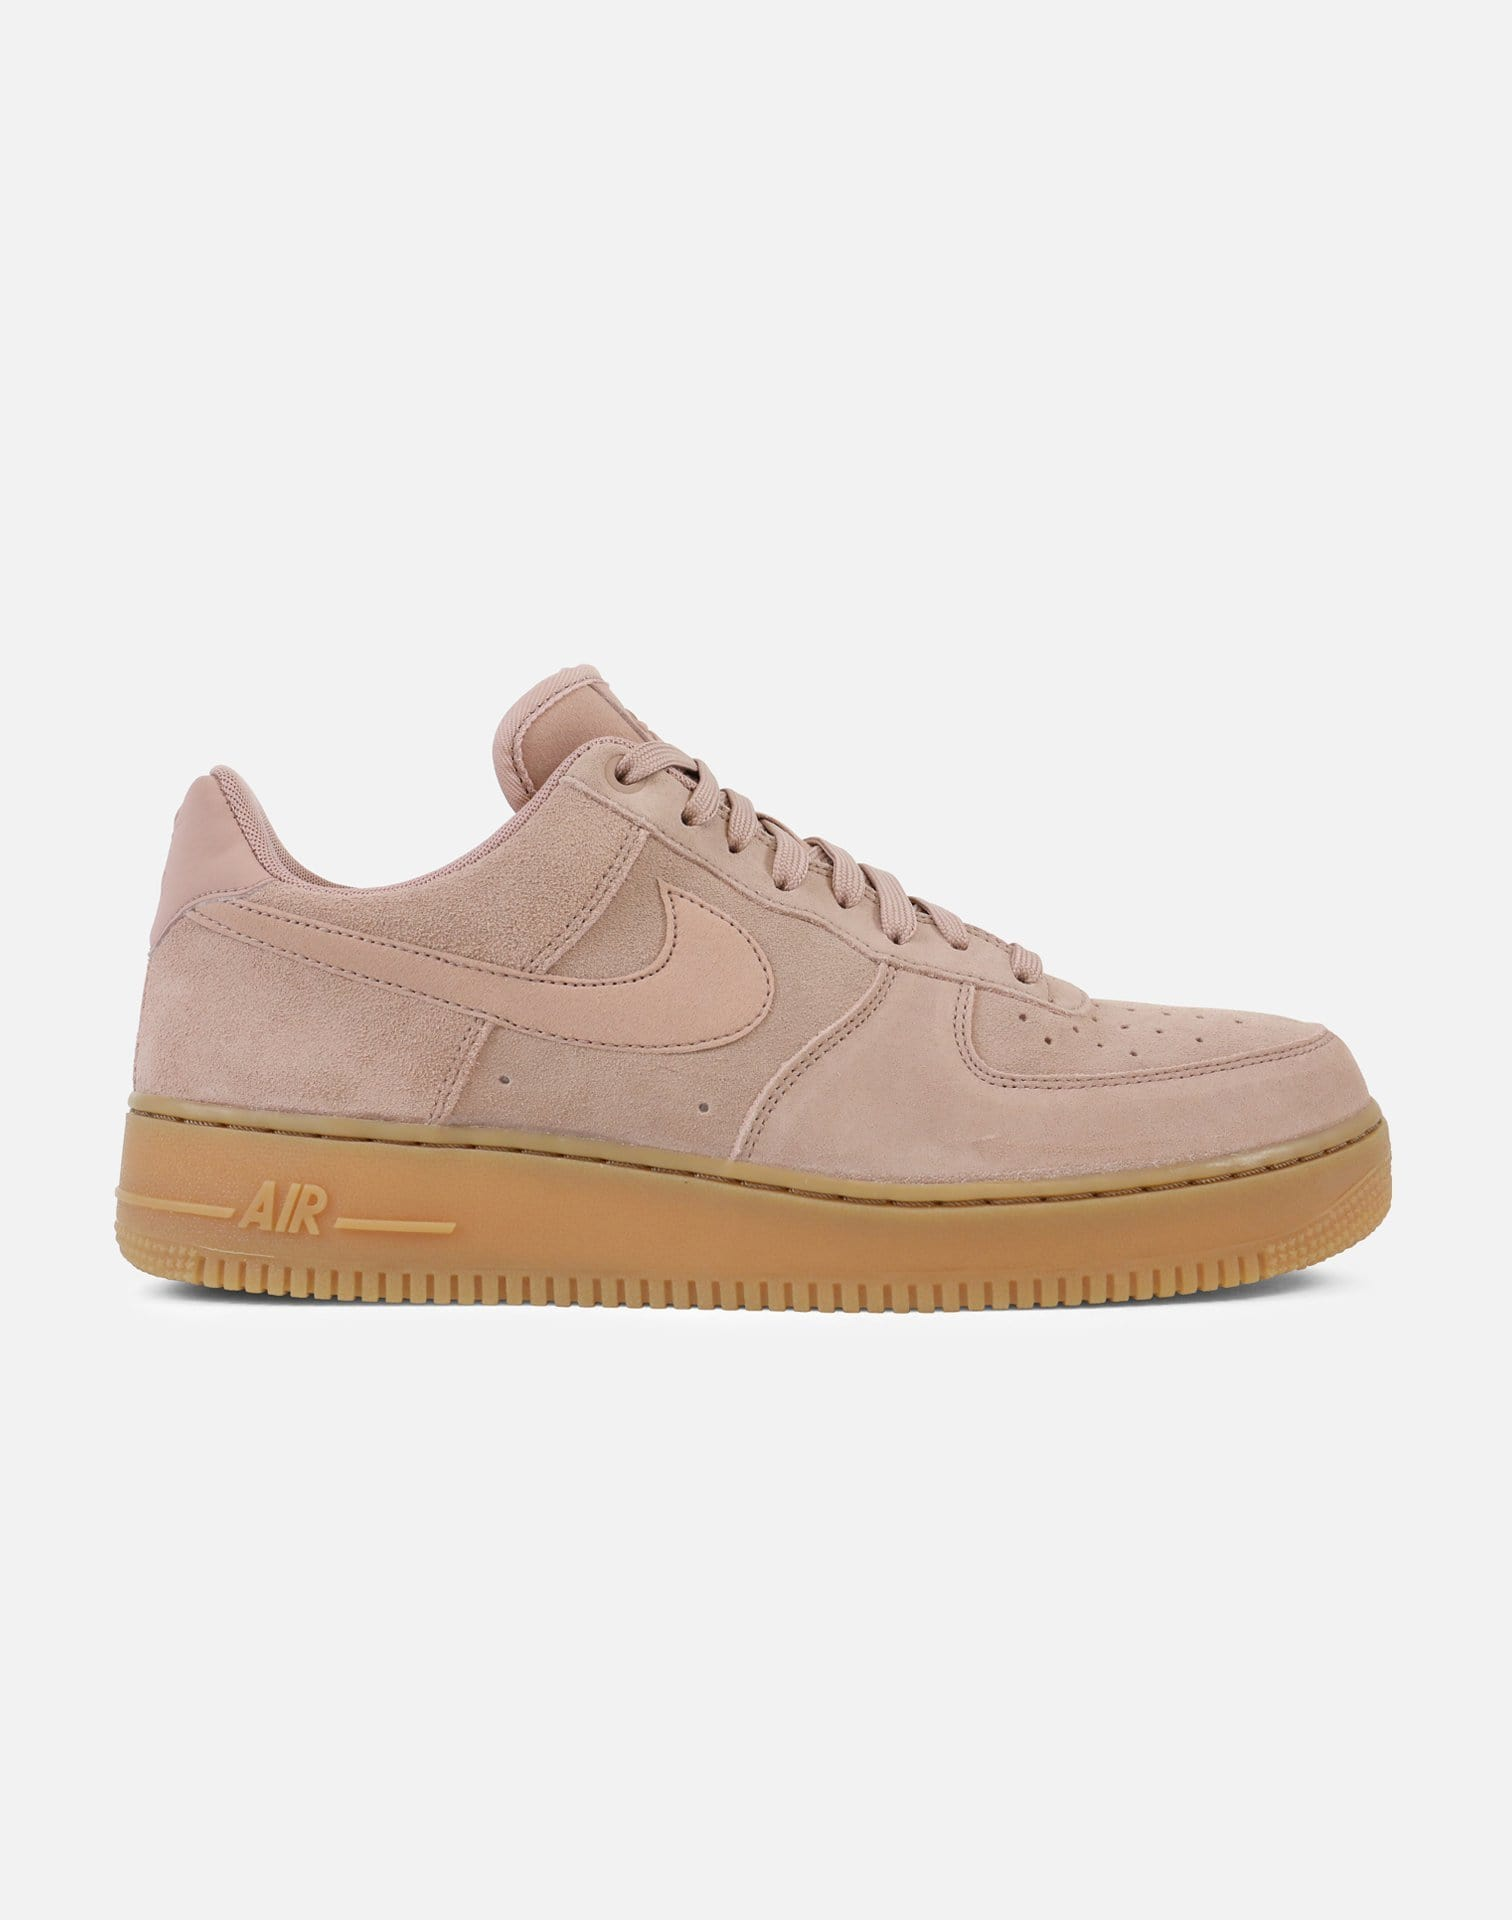 Nike Air Force 1 '07 LV8 Suede (Particle Pink/Particle Pink)